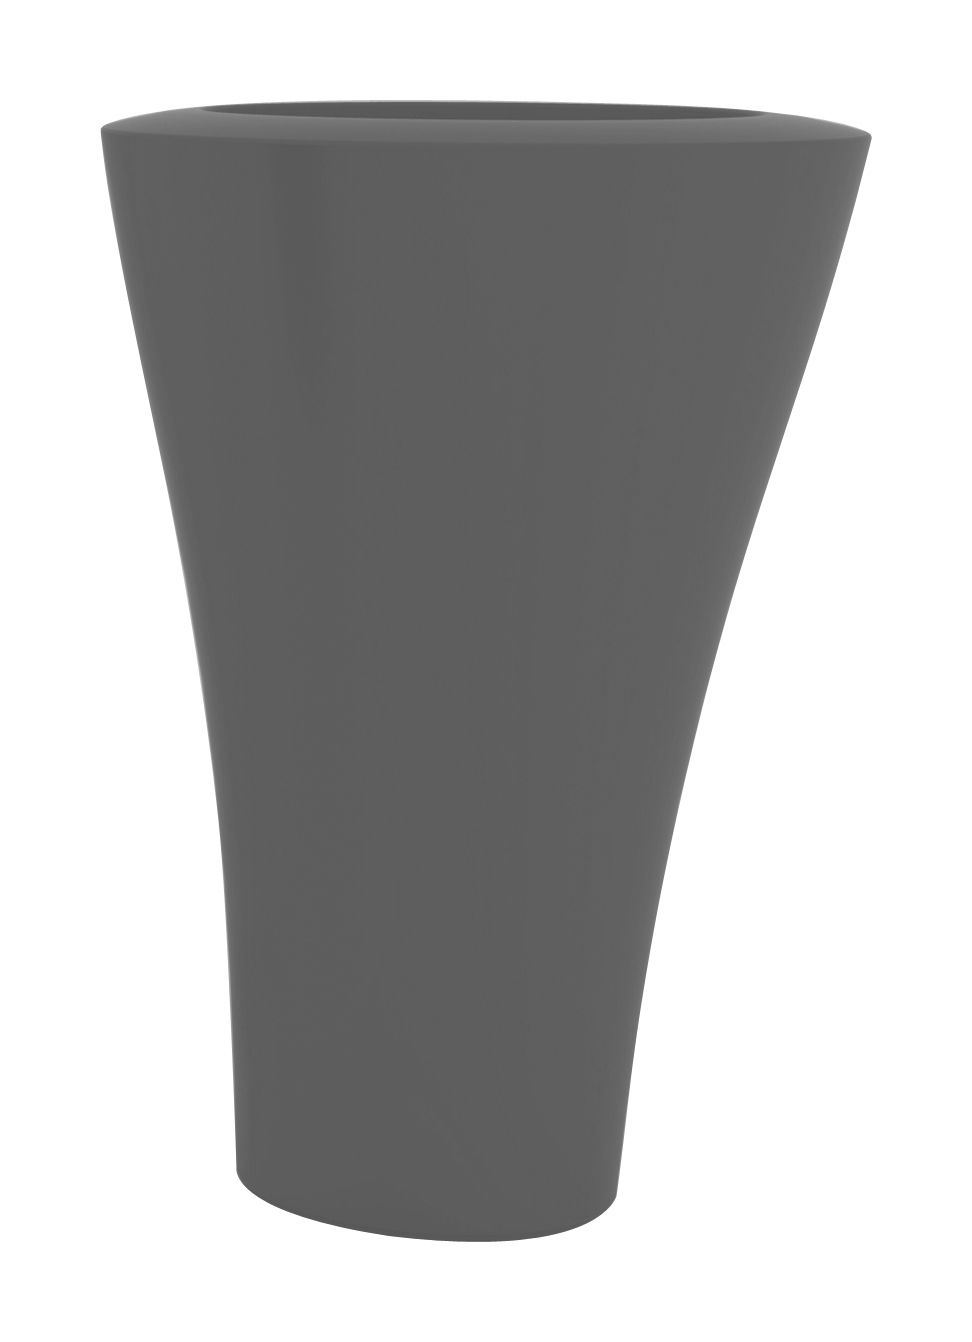 Outdoor - Pots & Plants - Ming Extra High Flowerpot - H 140 cm by Serralunga - Anthracite - Polythene